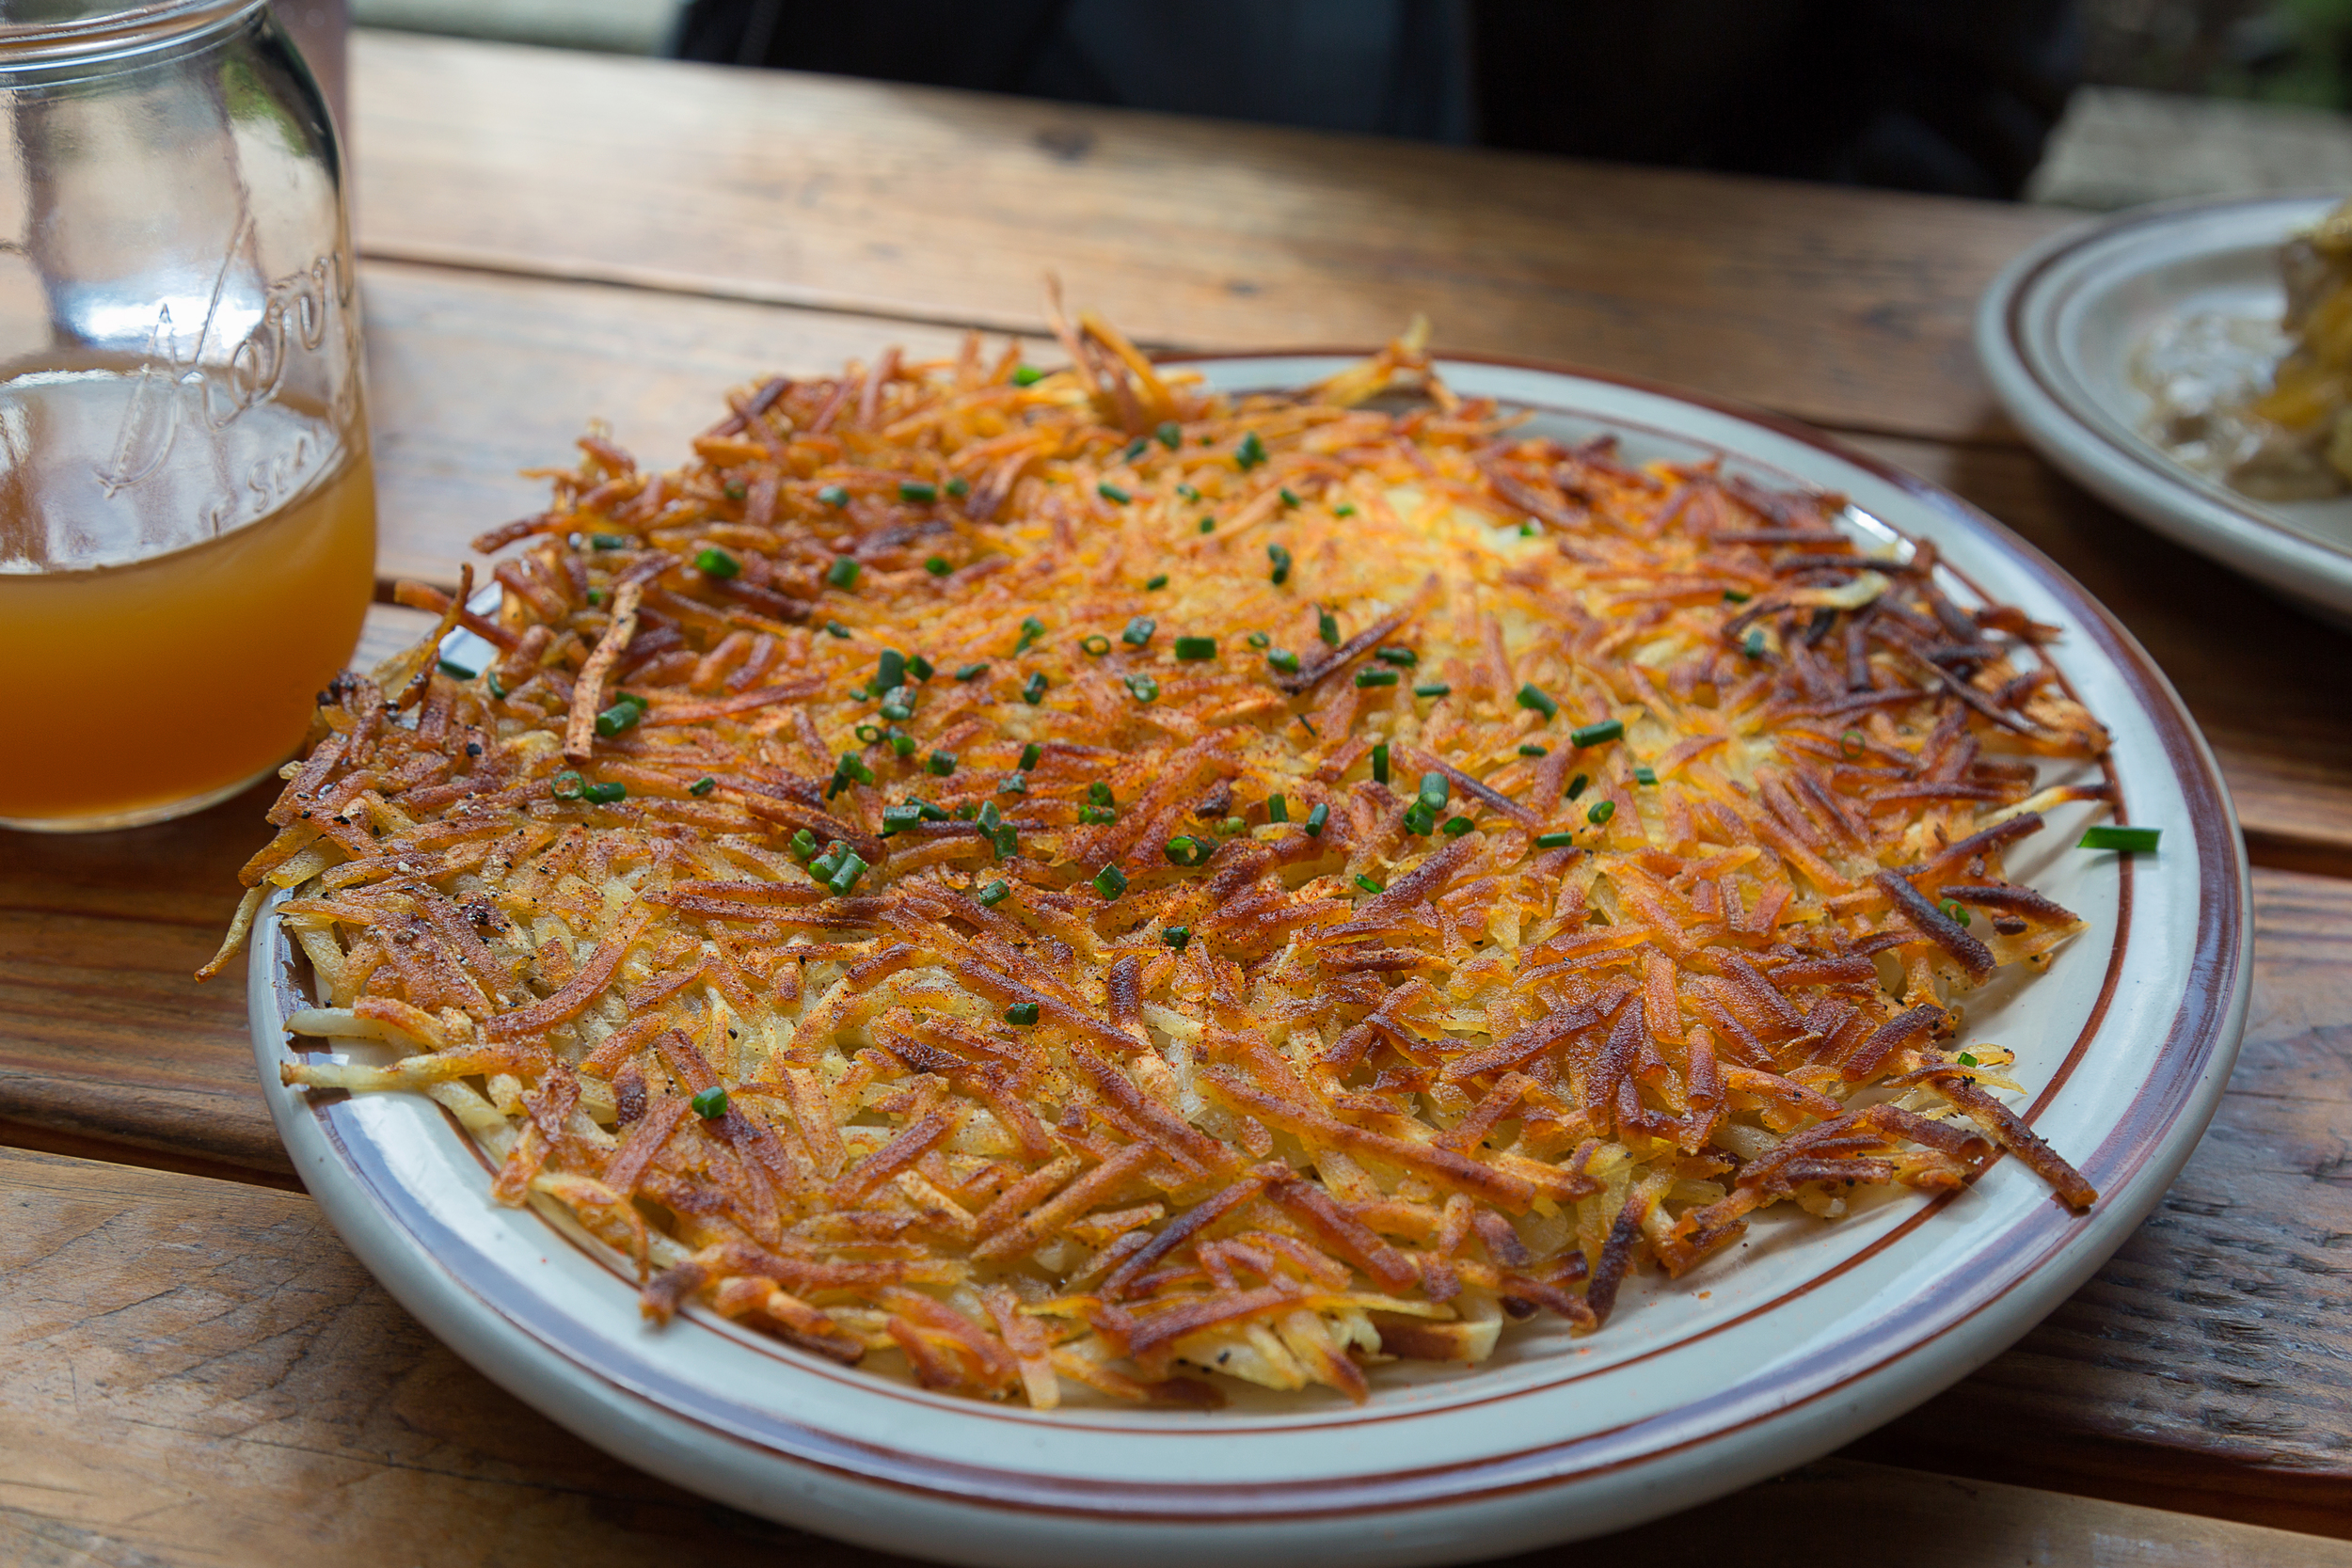 Pine State Biscuits - Hash Browns